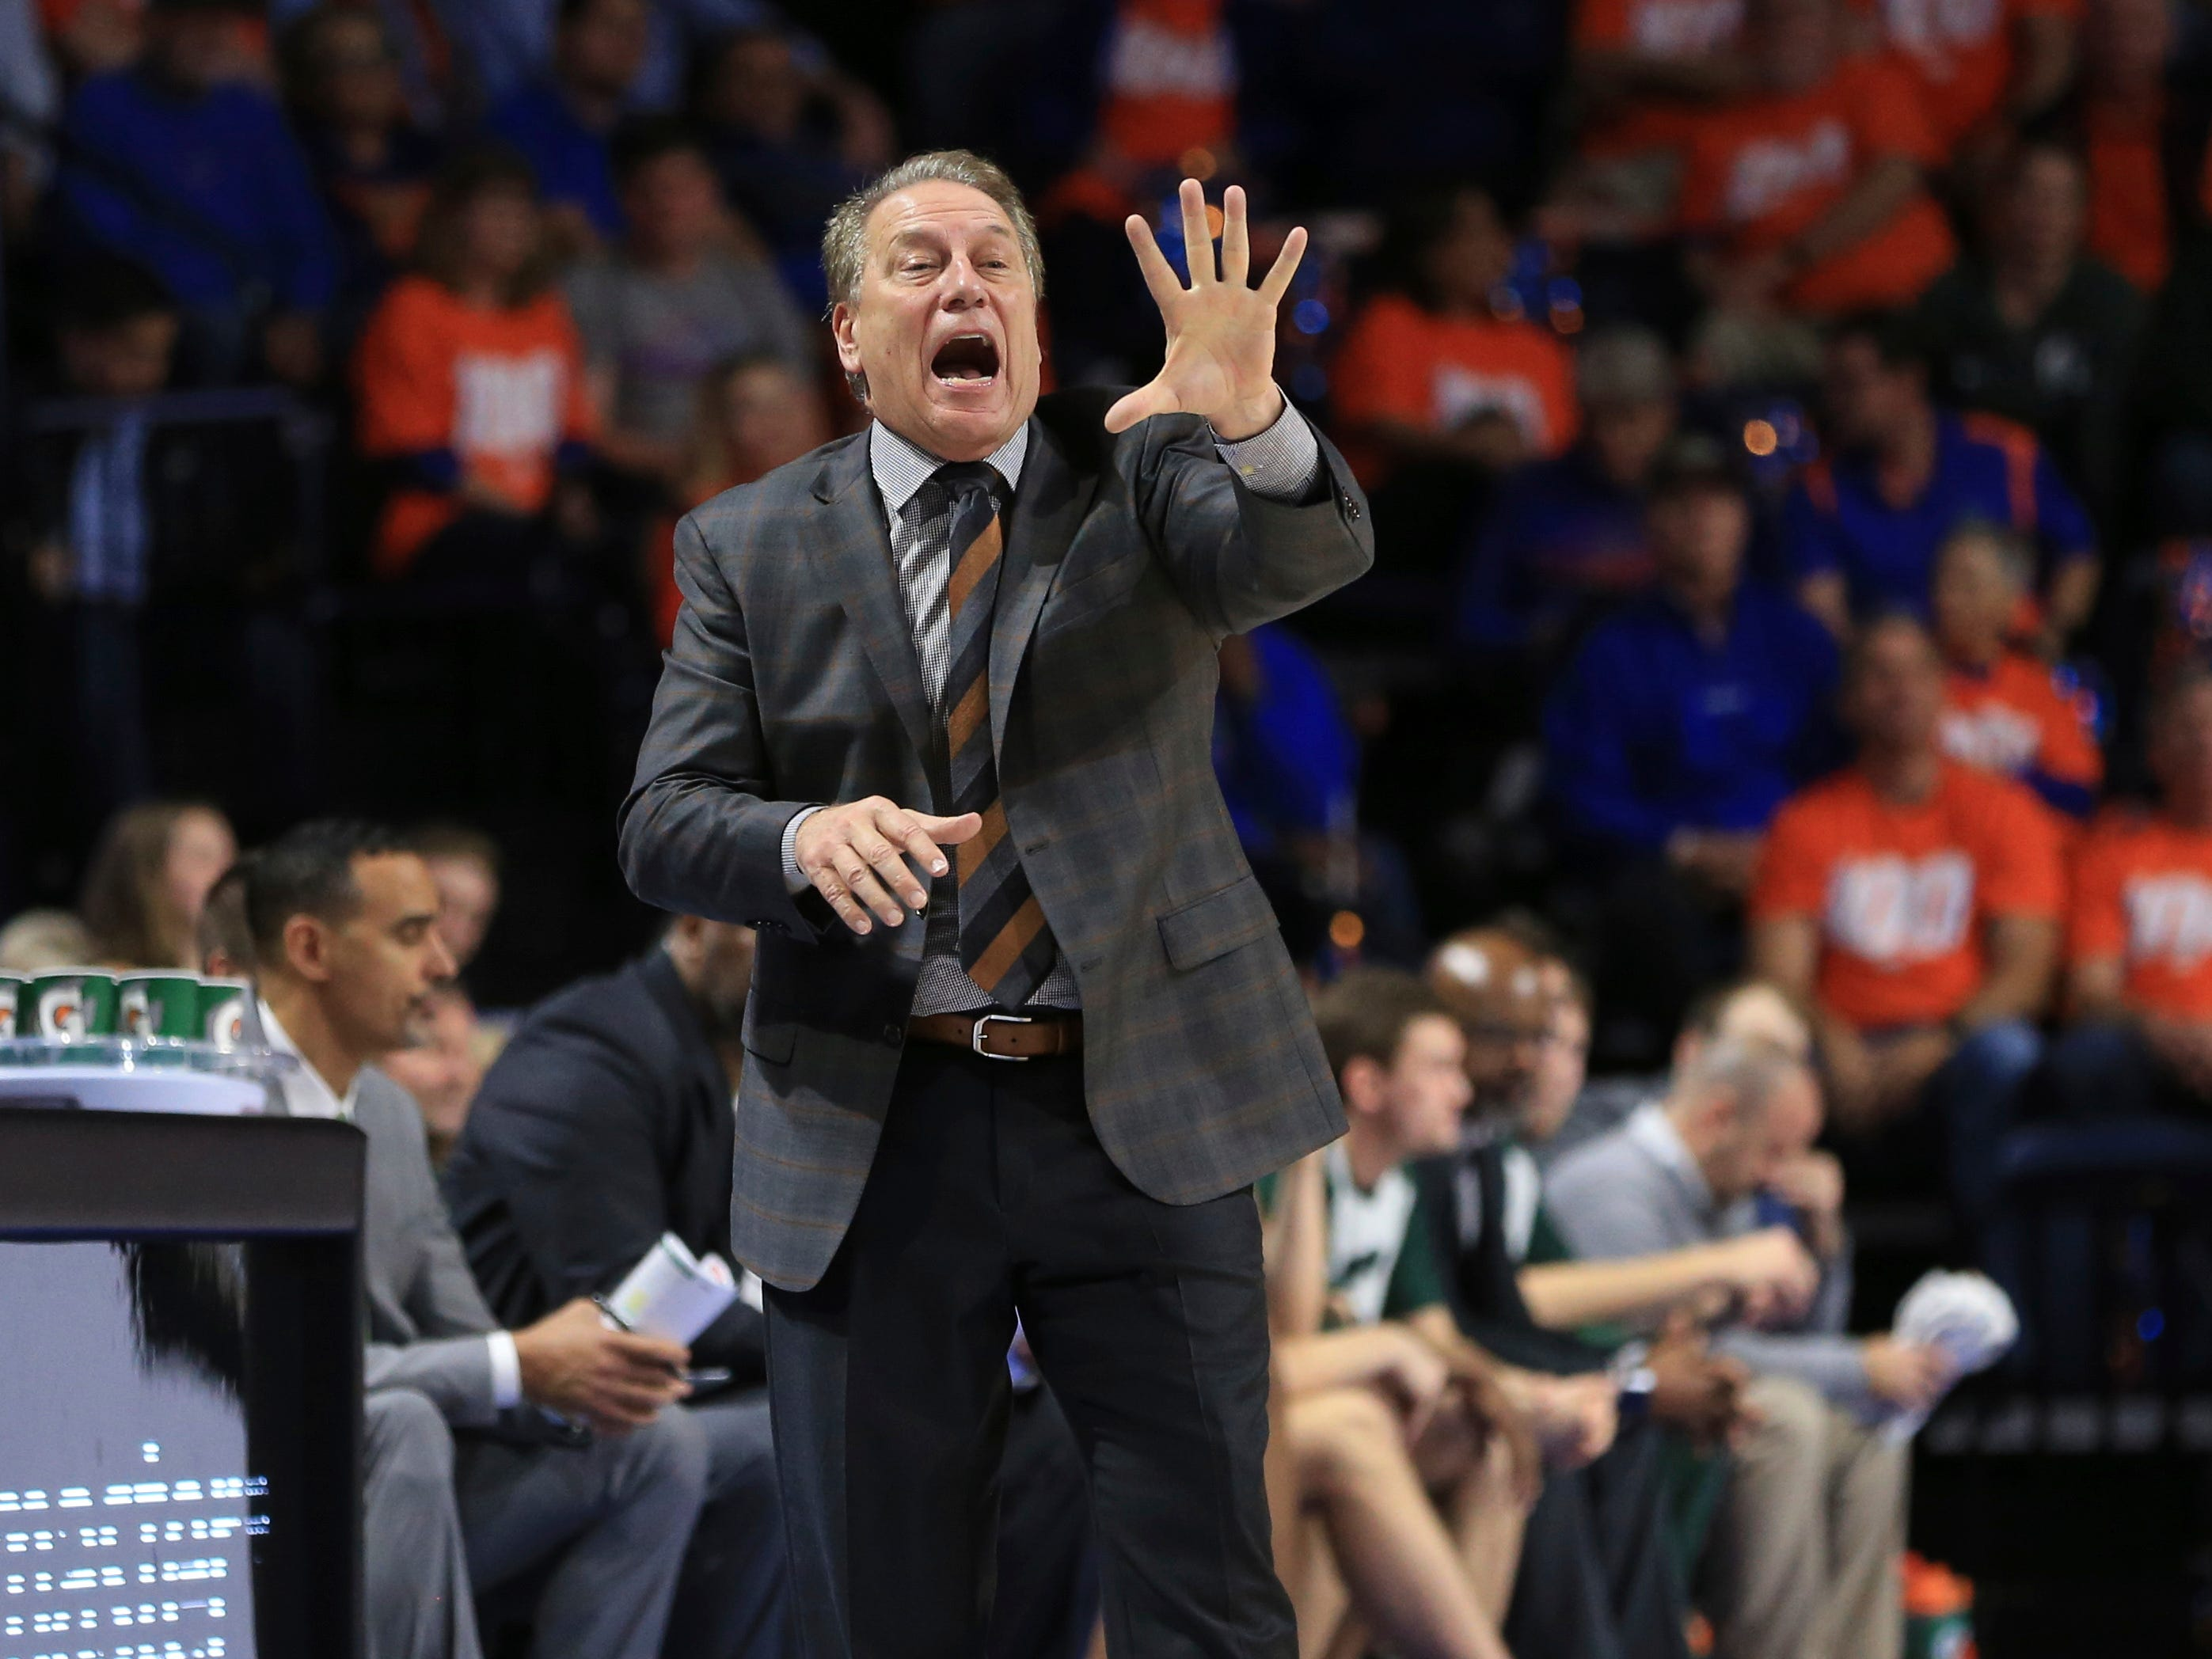 Michigan State head coach Tom Izzo directs his players during the second half of an NCAA college basketball game against Florida Saturday, Dec. 8, 2018, in Gainesville, Fla. Michigan State defeated Florida 63-59.